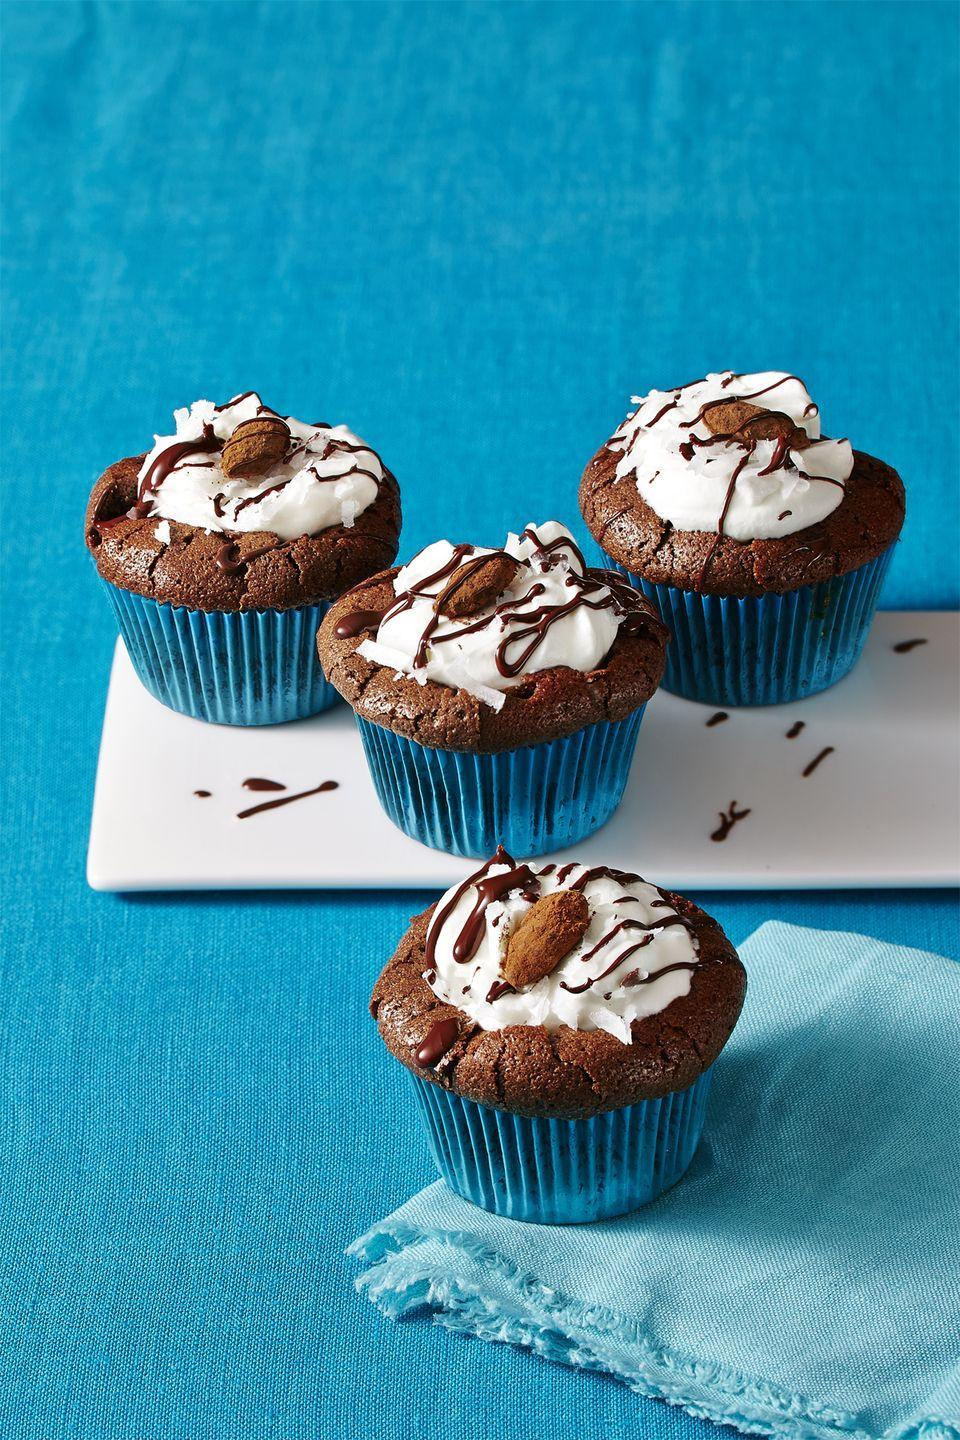 """<p>A beloved candy bar reimagined in cupcake form—you <em>might</em> want to make a double batch.</p><p><a href=""""https://www.womansday.com/food-recipes/food-drinks/recipes/a58122/almond-joy-cupcakes-recipes/"""" rel=""""nofollow noopener"""" target=""""_blank"""" data-ylk=""""slk:Get the recipe."""" class=""""link rapid-noclick-resp""""><strong>Get the recipe.</strong></a></p>"""